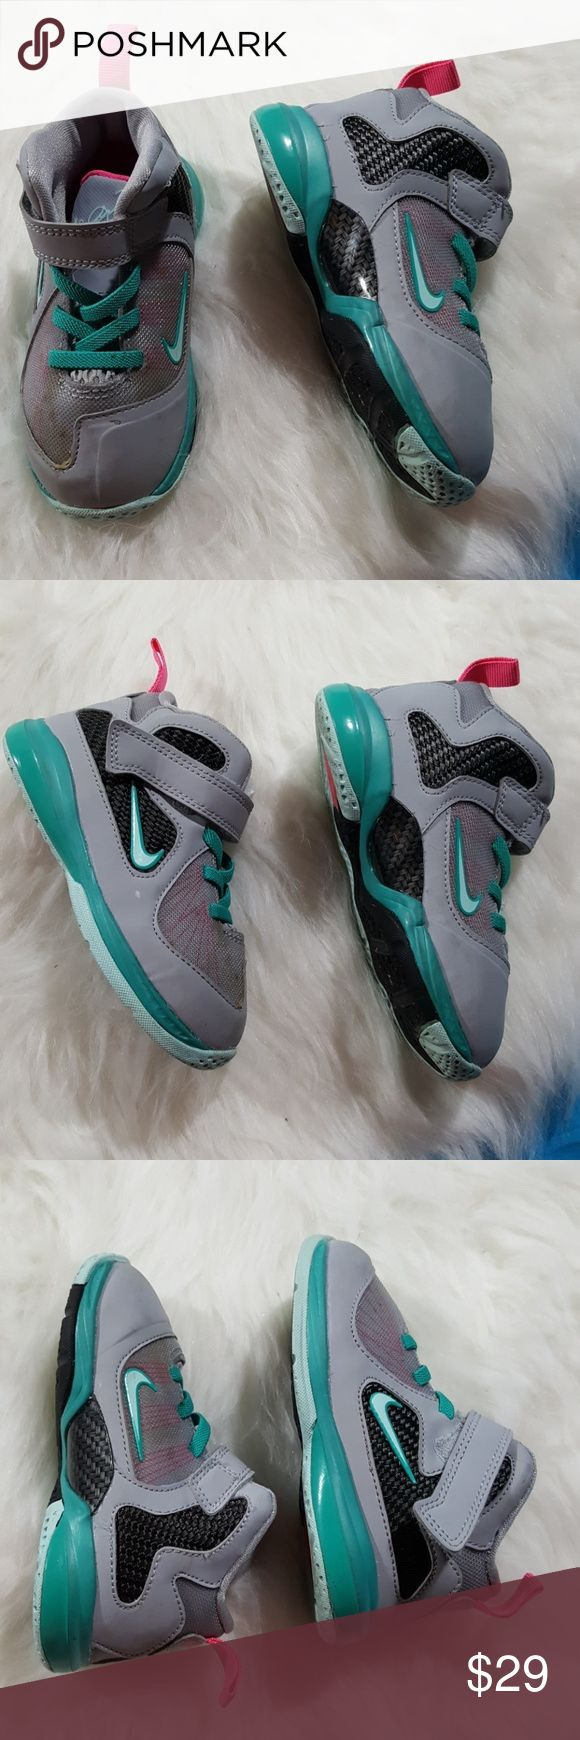 8c toddler le bron james nike shoes Really great condition LeBron James toddler shoes and aqua grey and hot pink. Some dirt on one of the shoes as picture to try to clean before sending. Otherwise excellent condition le bron james Shoes Sneakers